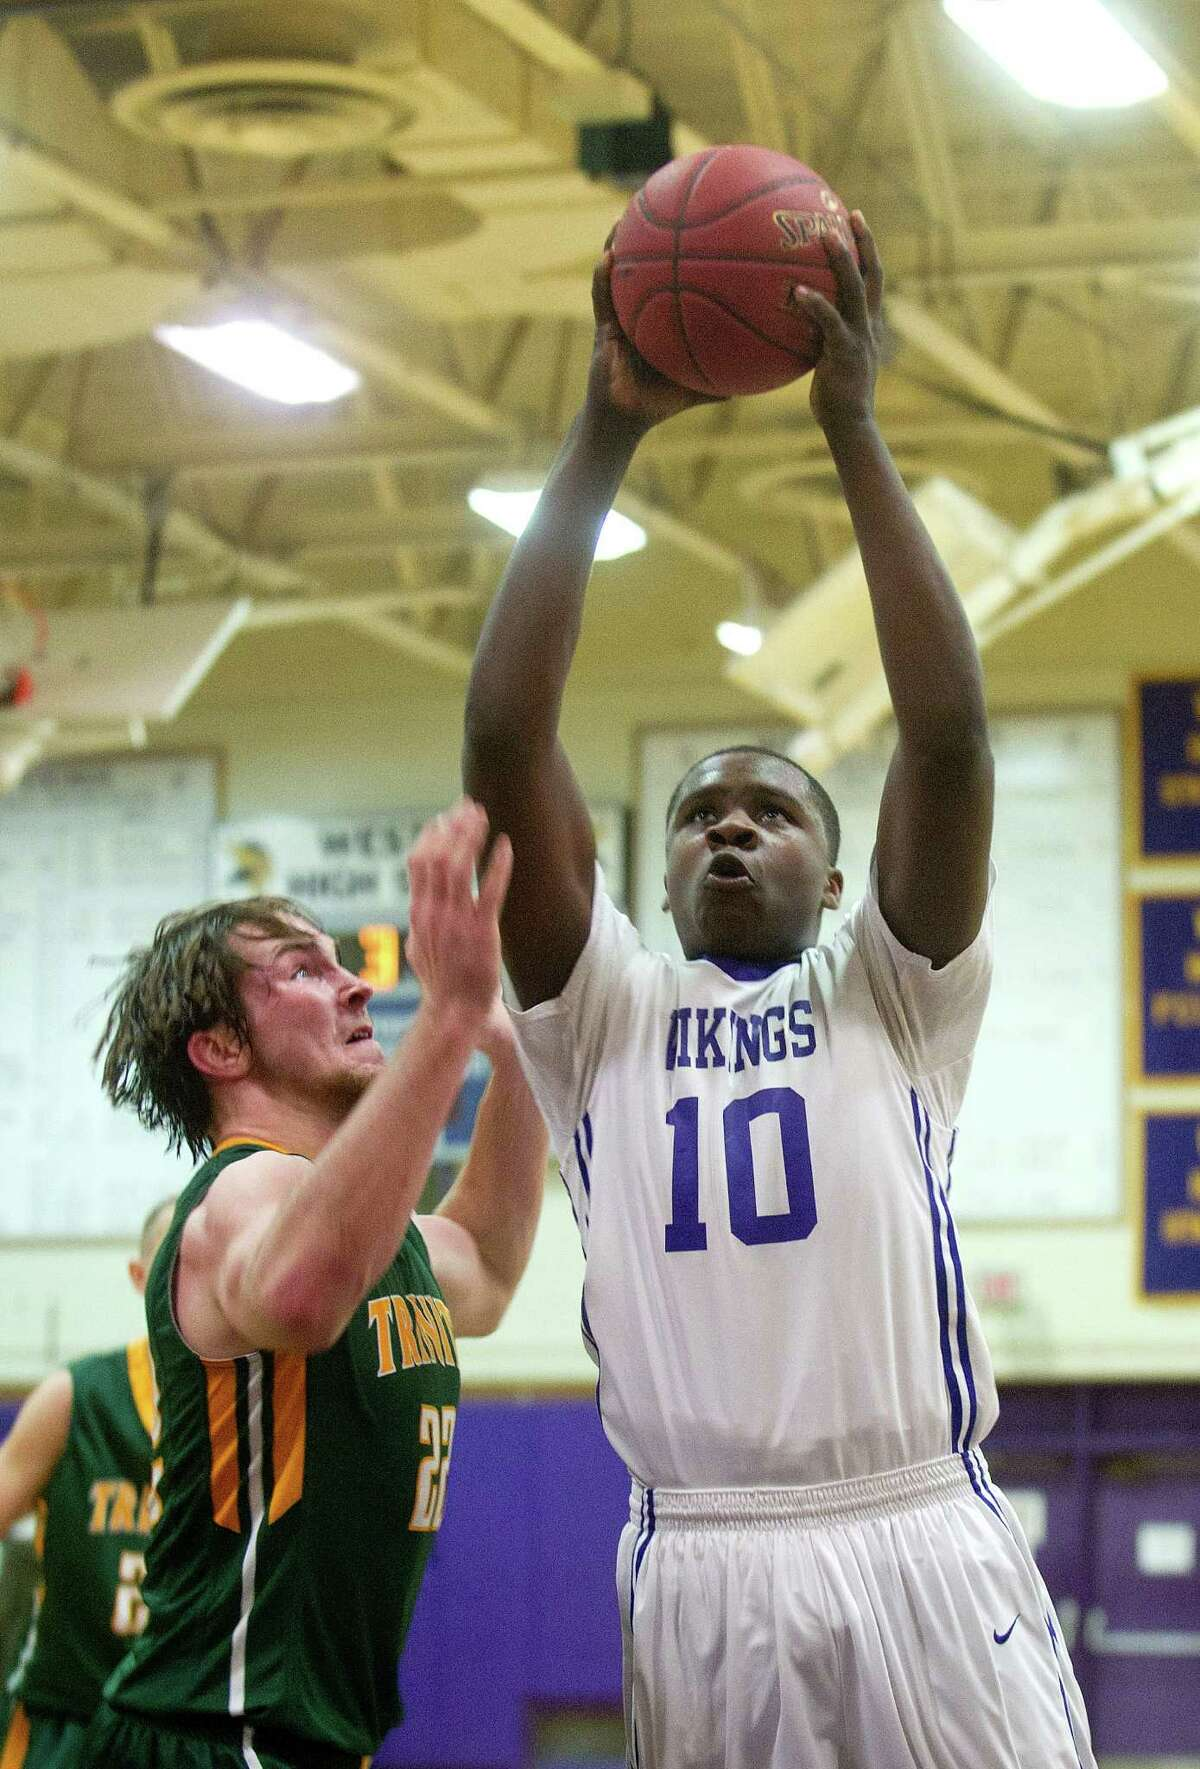 Westhilll's Tyrell Alexander takes a shot during Friday's basketball game against Trinity Catholic at Westhill High School on January 30, 2015.